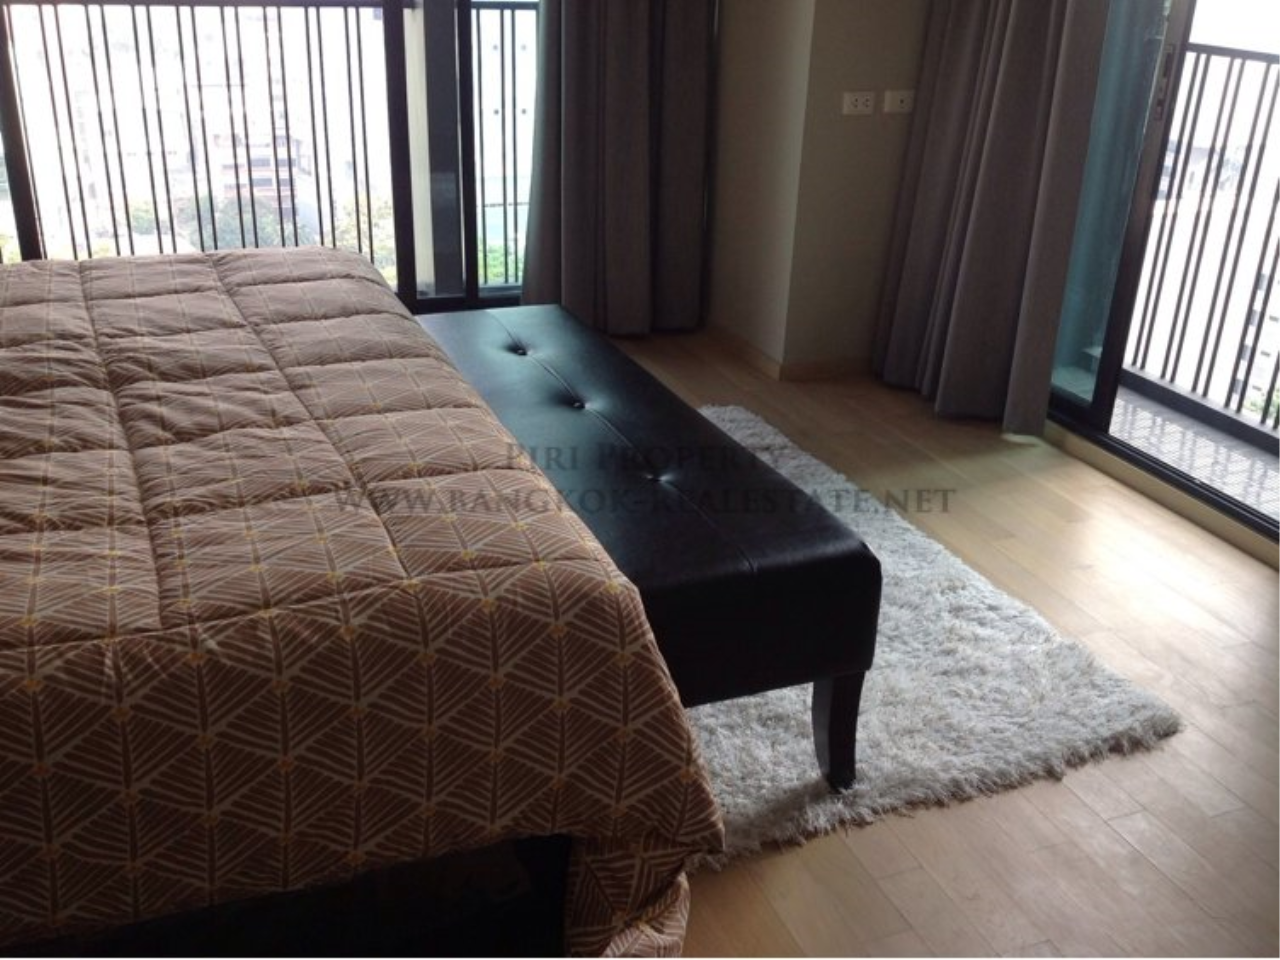 Piri Property Agency's Nicely furnished 2 Bedroom Condo - Noble Reveal - Next to Ekkamai BTS 4